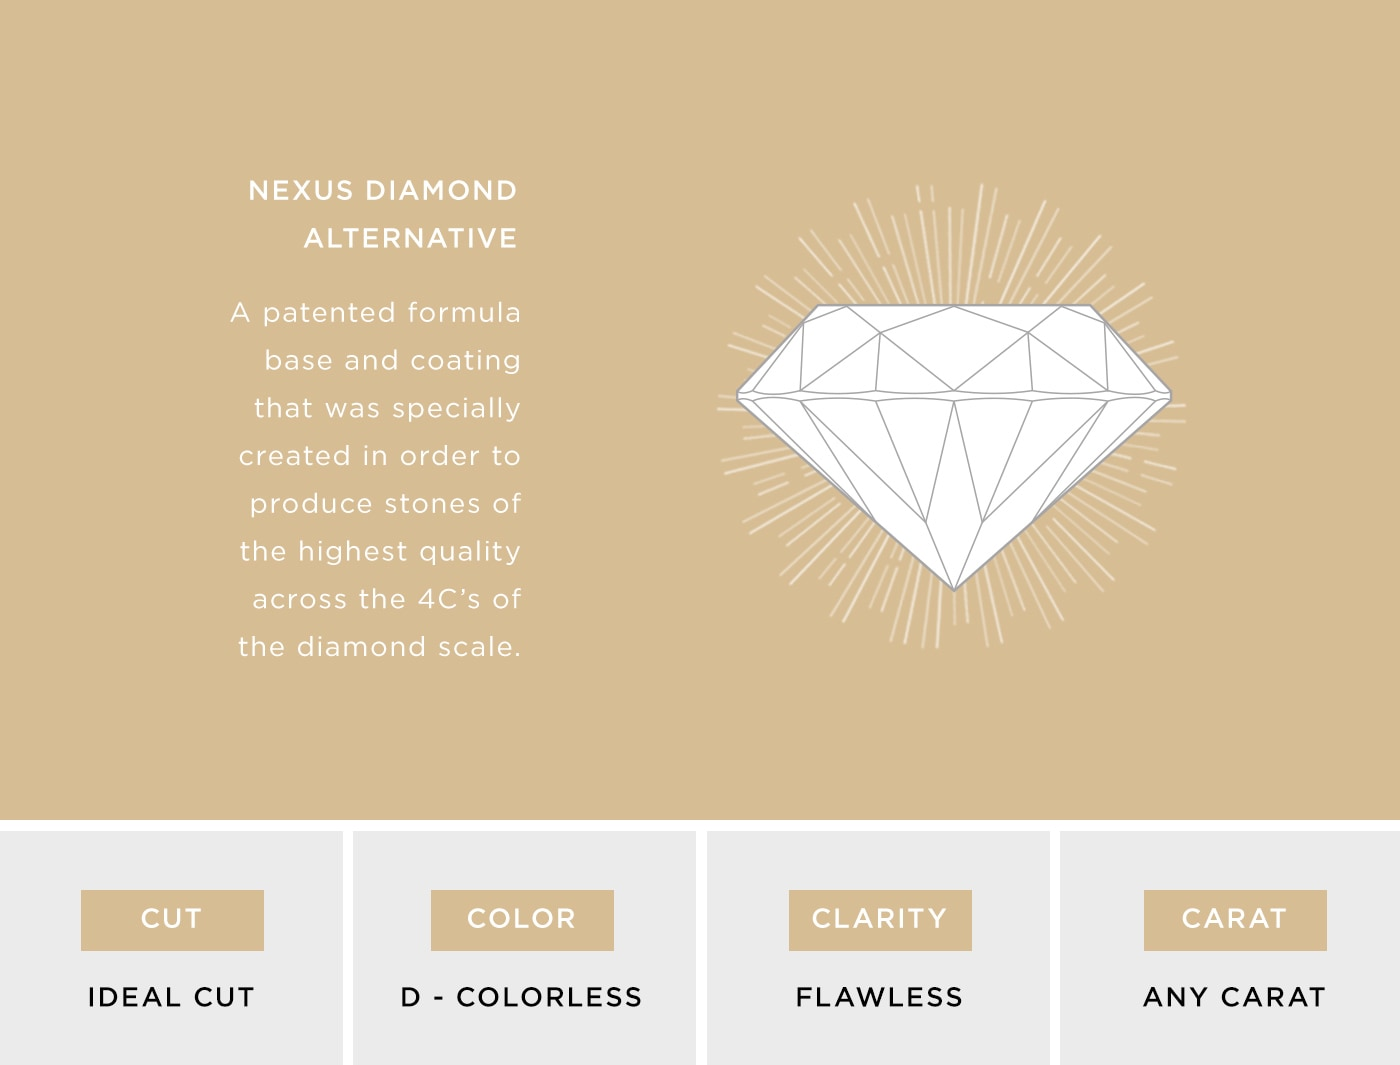 A depiction of the 4Cs of Diamond Quality, where Nexus Diamonds rate the highest.